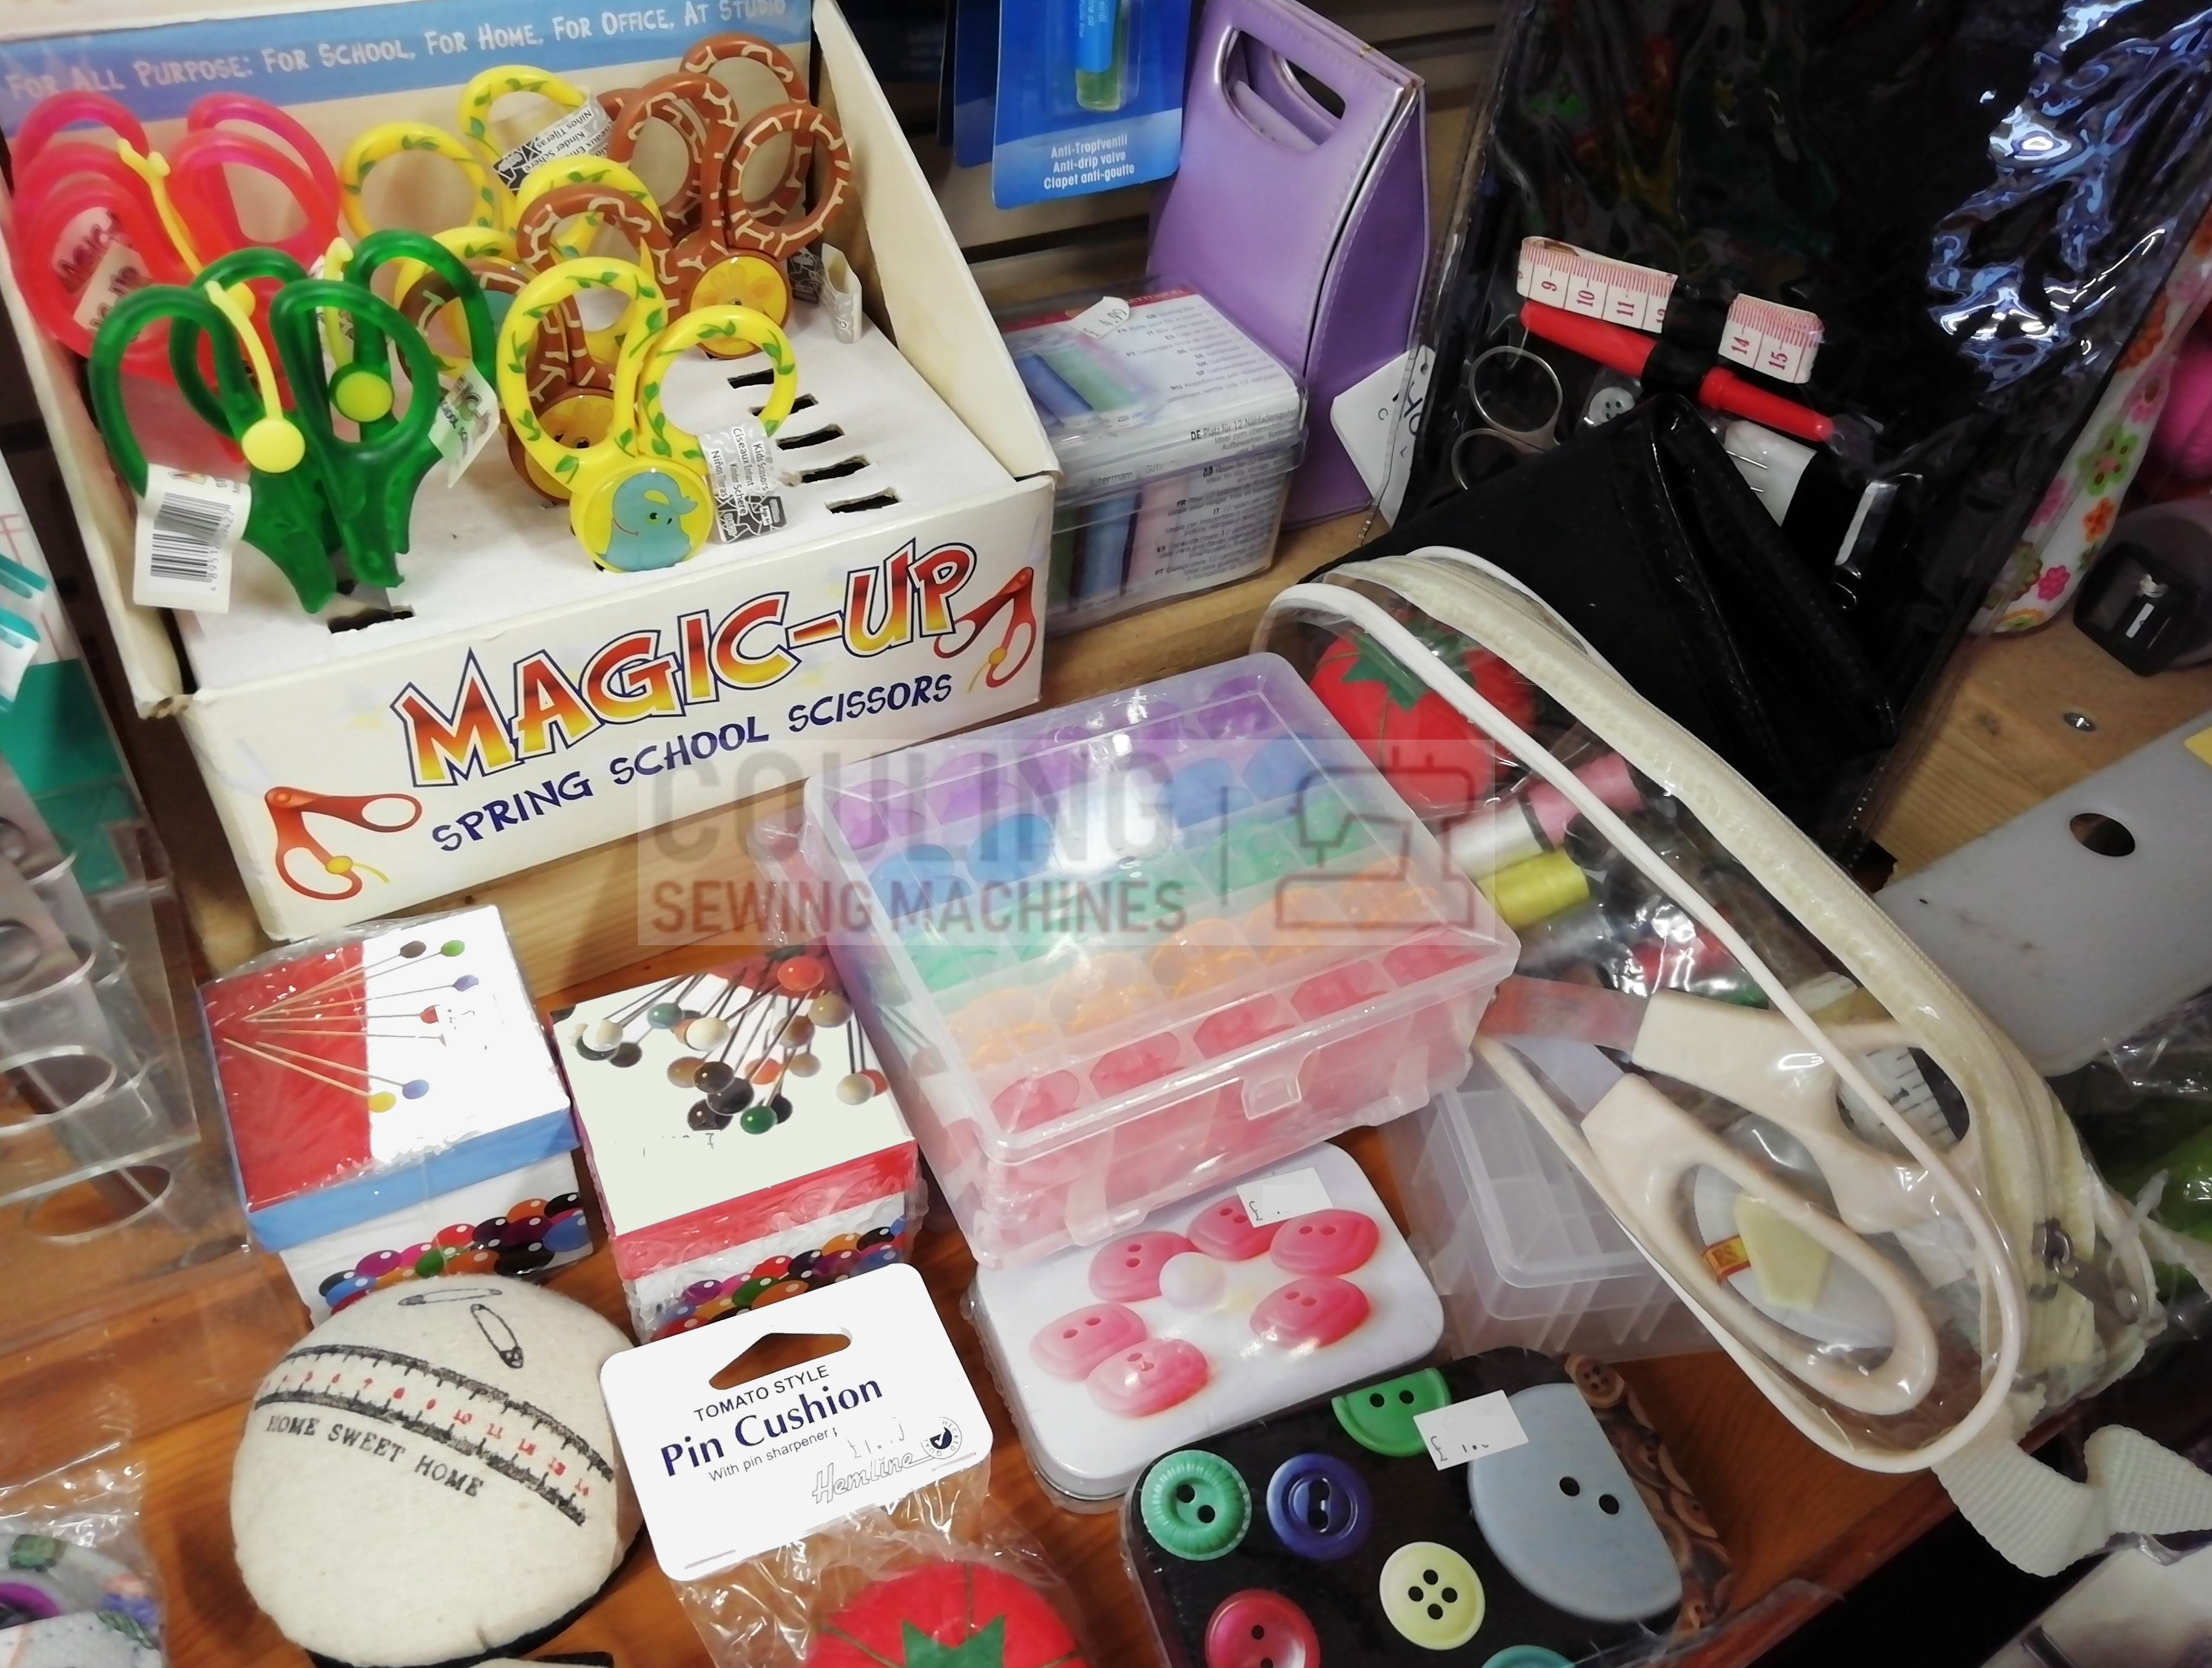 couling-shop-display-habby-items-for-sale.jpg